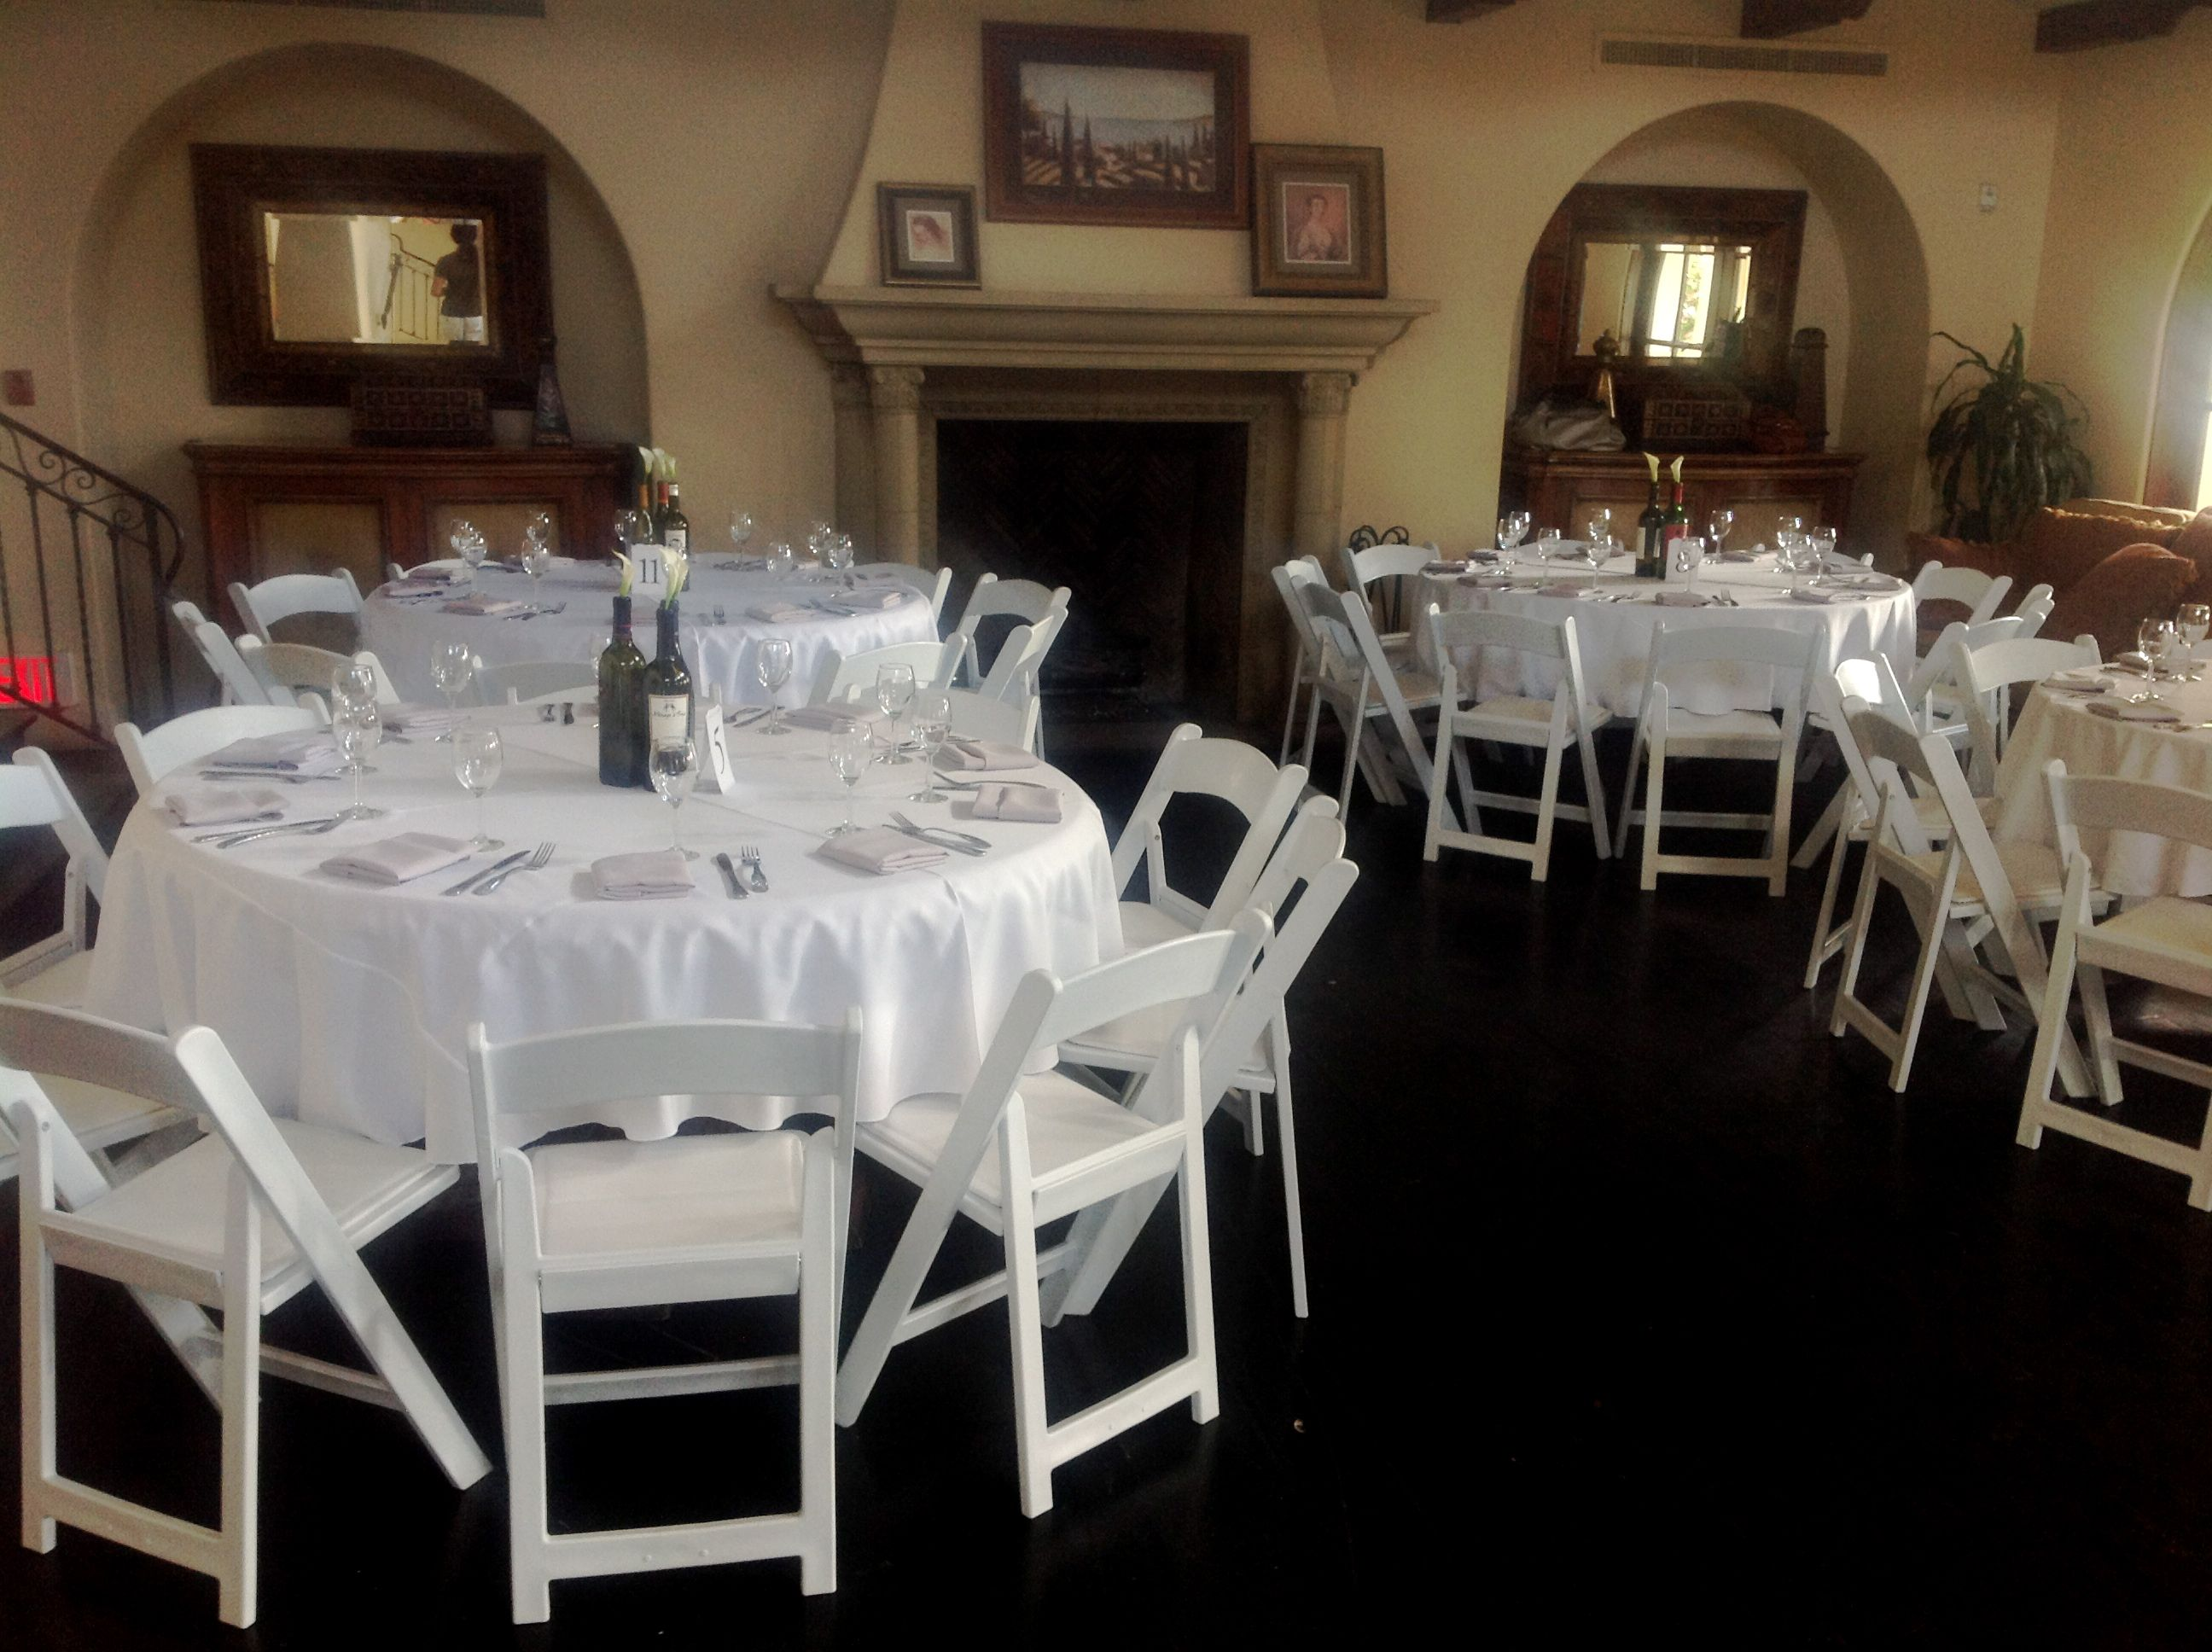 chair cover rentals washington dc wholesale party tables and chairs small wedding at the woods venue in eastlake white linens